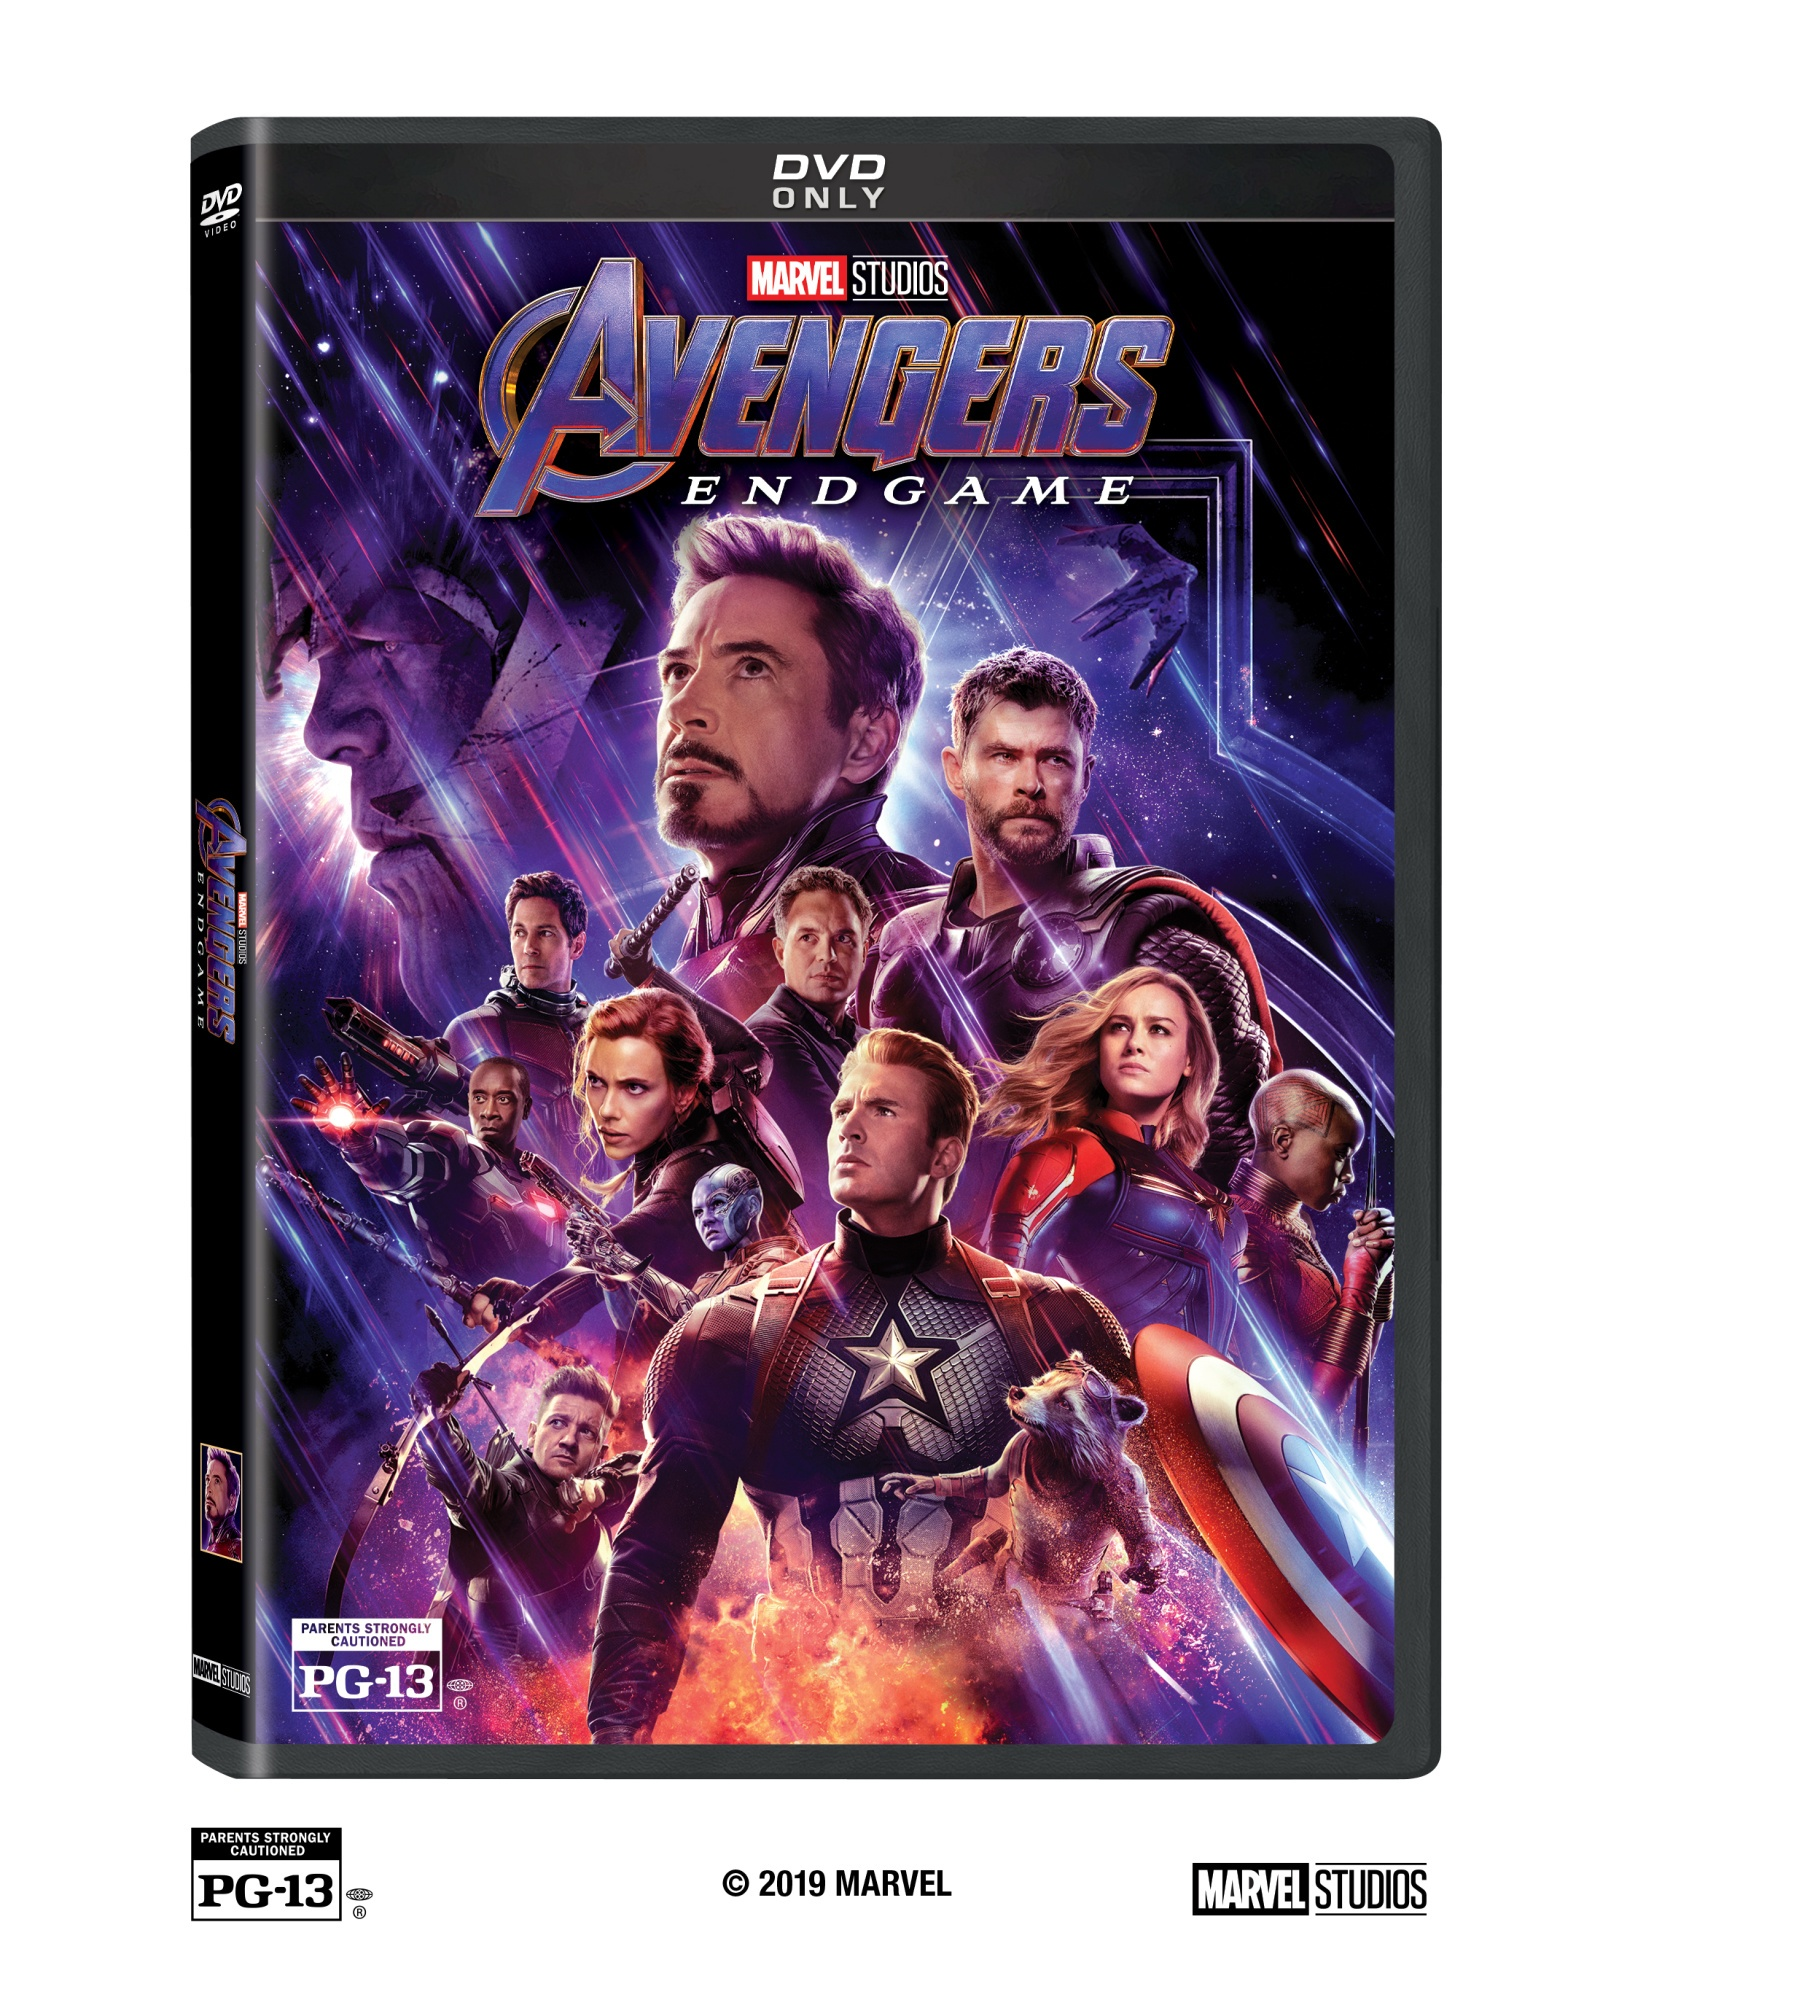 AVENGERS: ENDGAME Blu-Ray/Digital